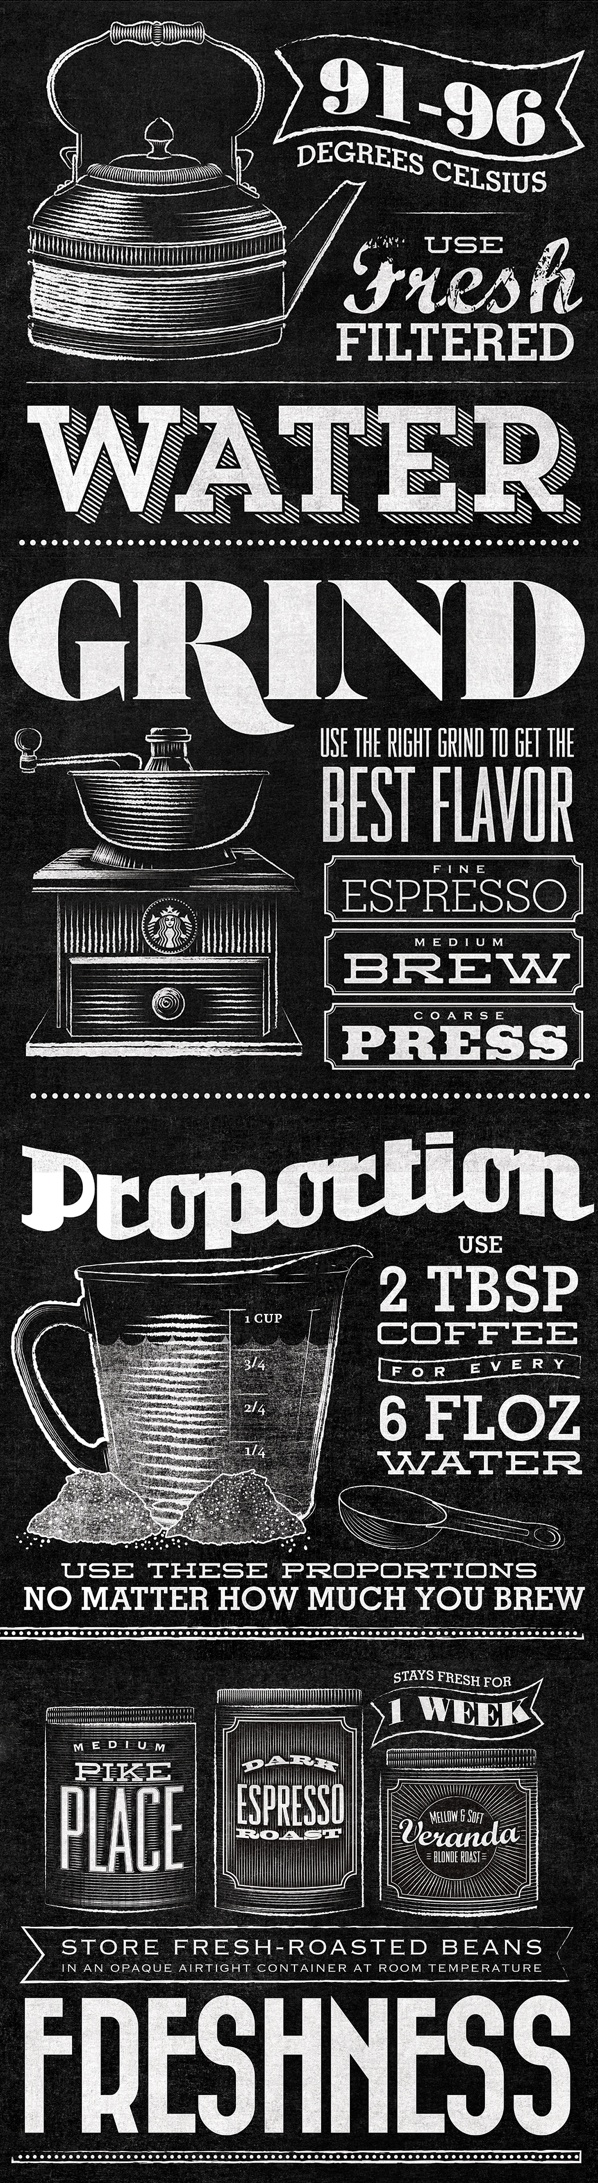 Starbucks - Home Brew by Jaymie McAmmond, via Behance | COFFEE | Pinterest